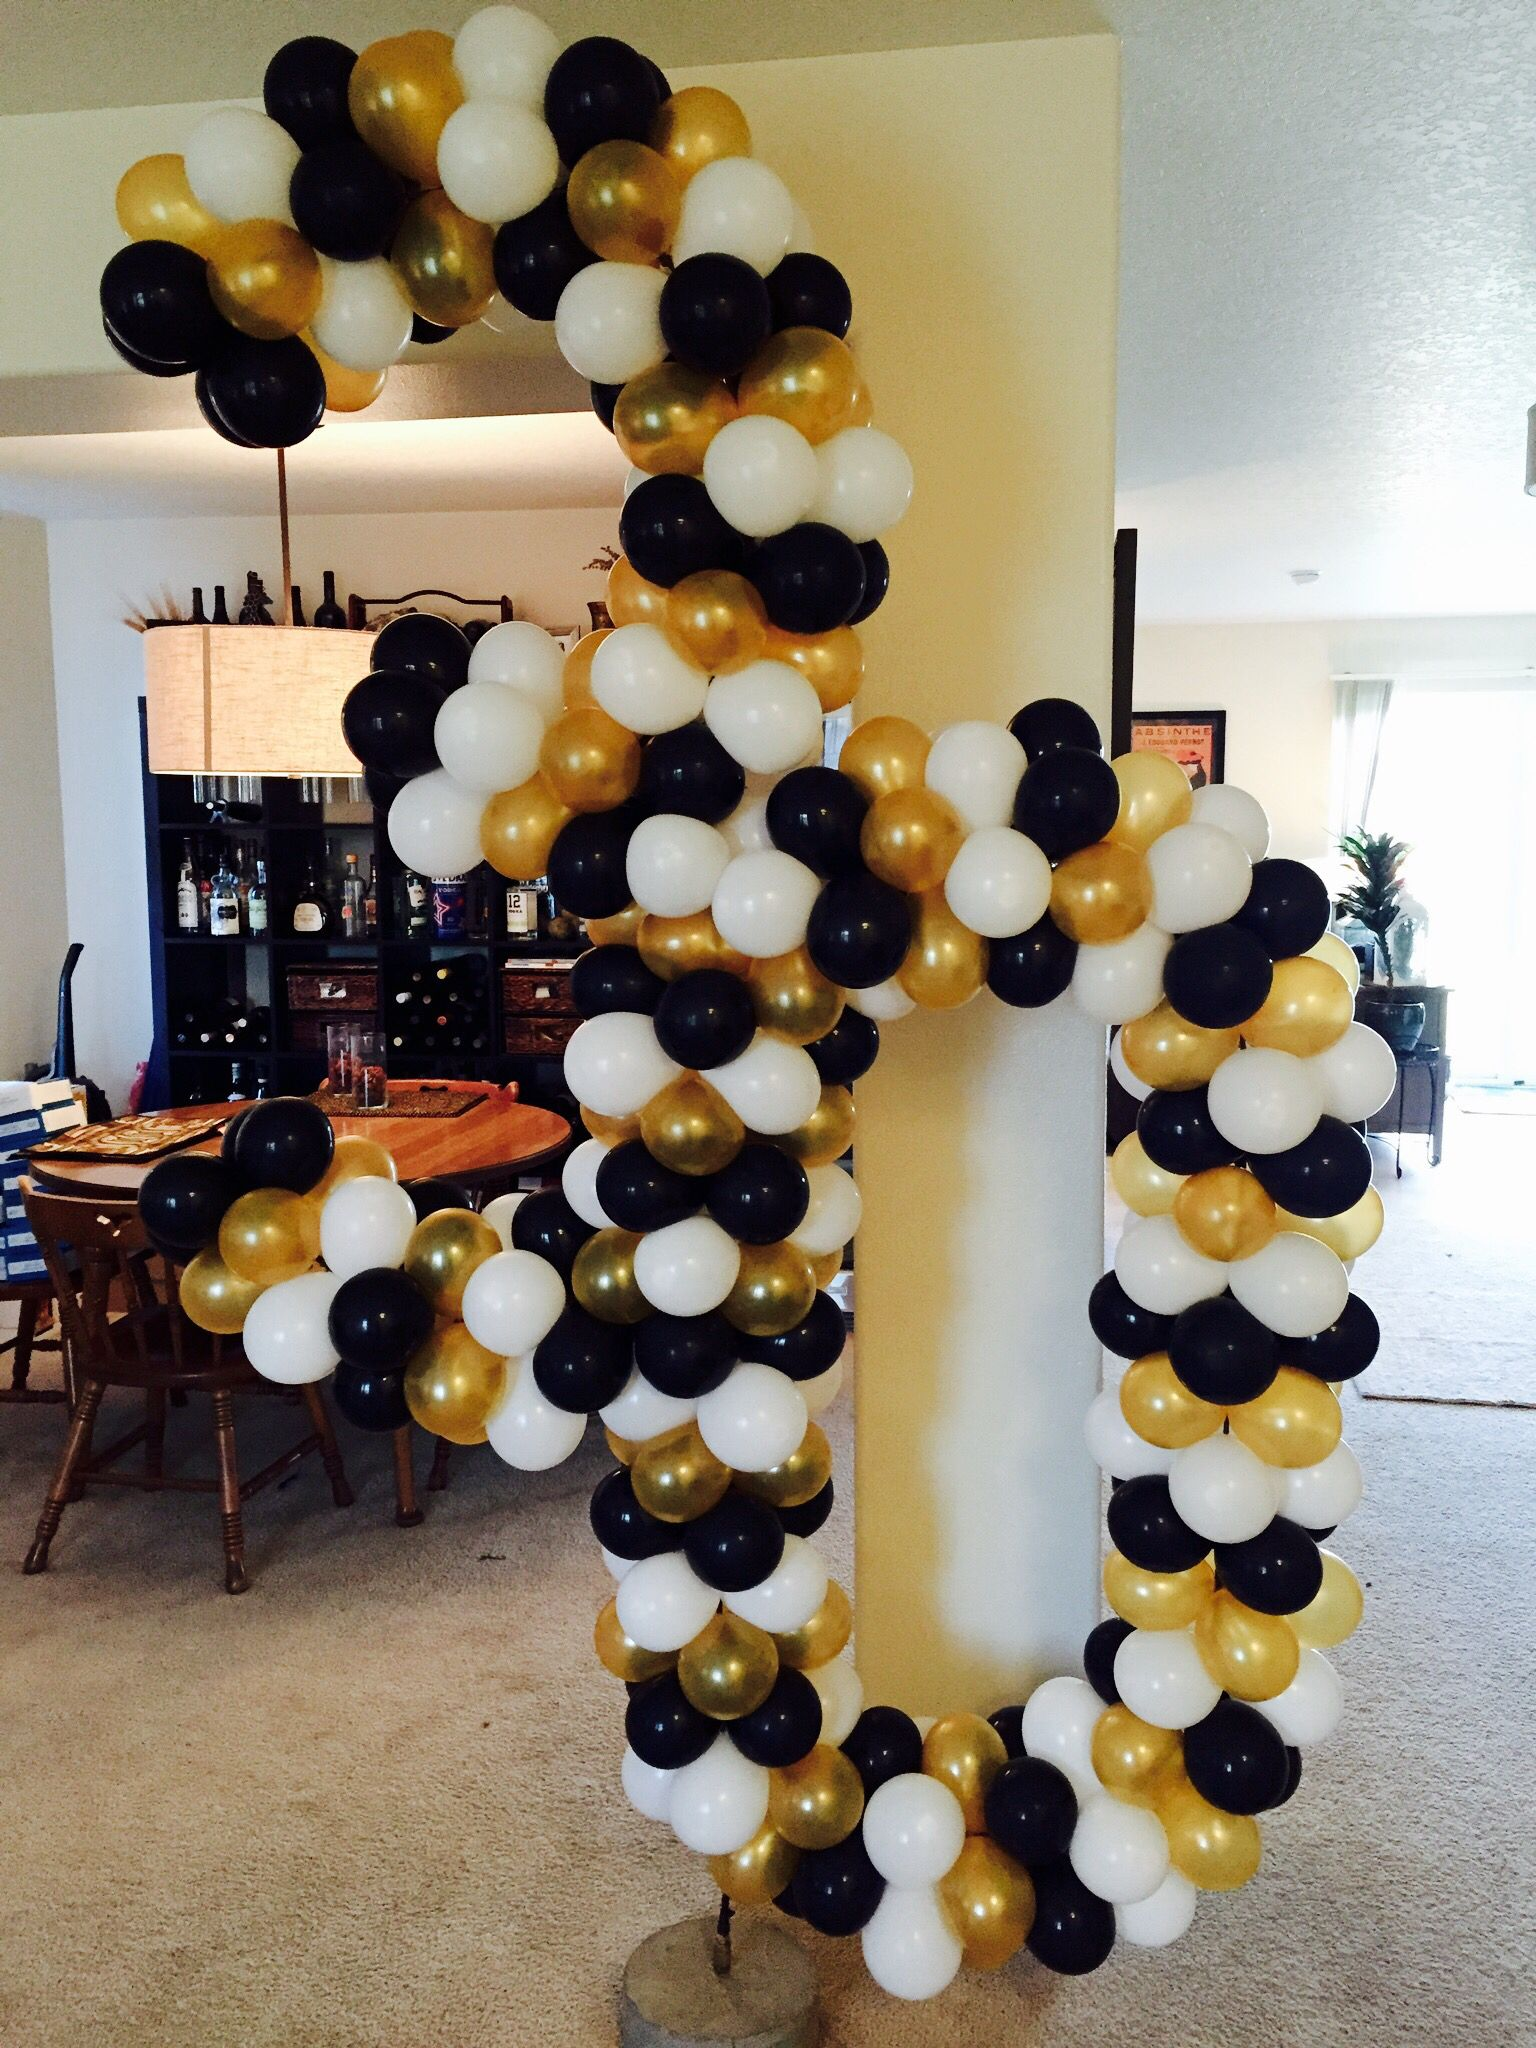 30th birthday balloons gold black and white up for 30th birthday party decoration